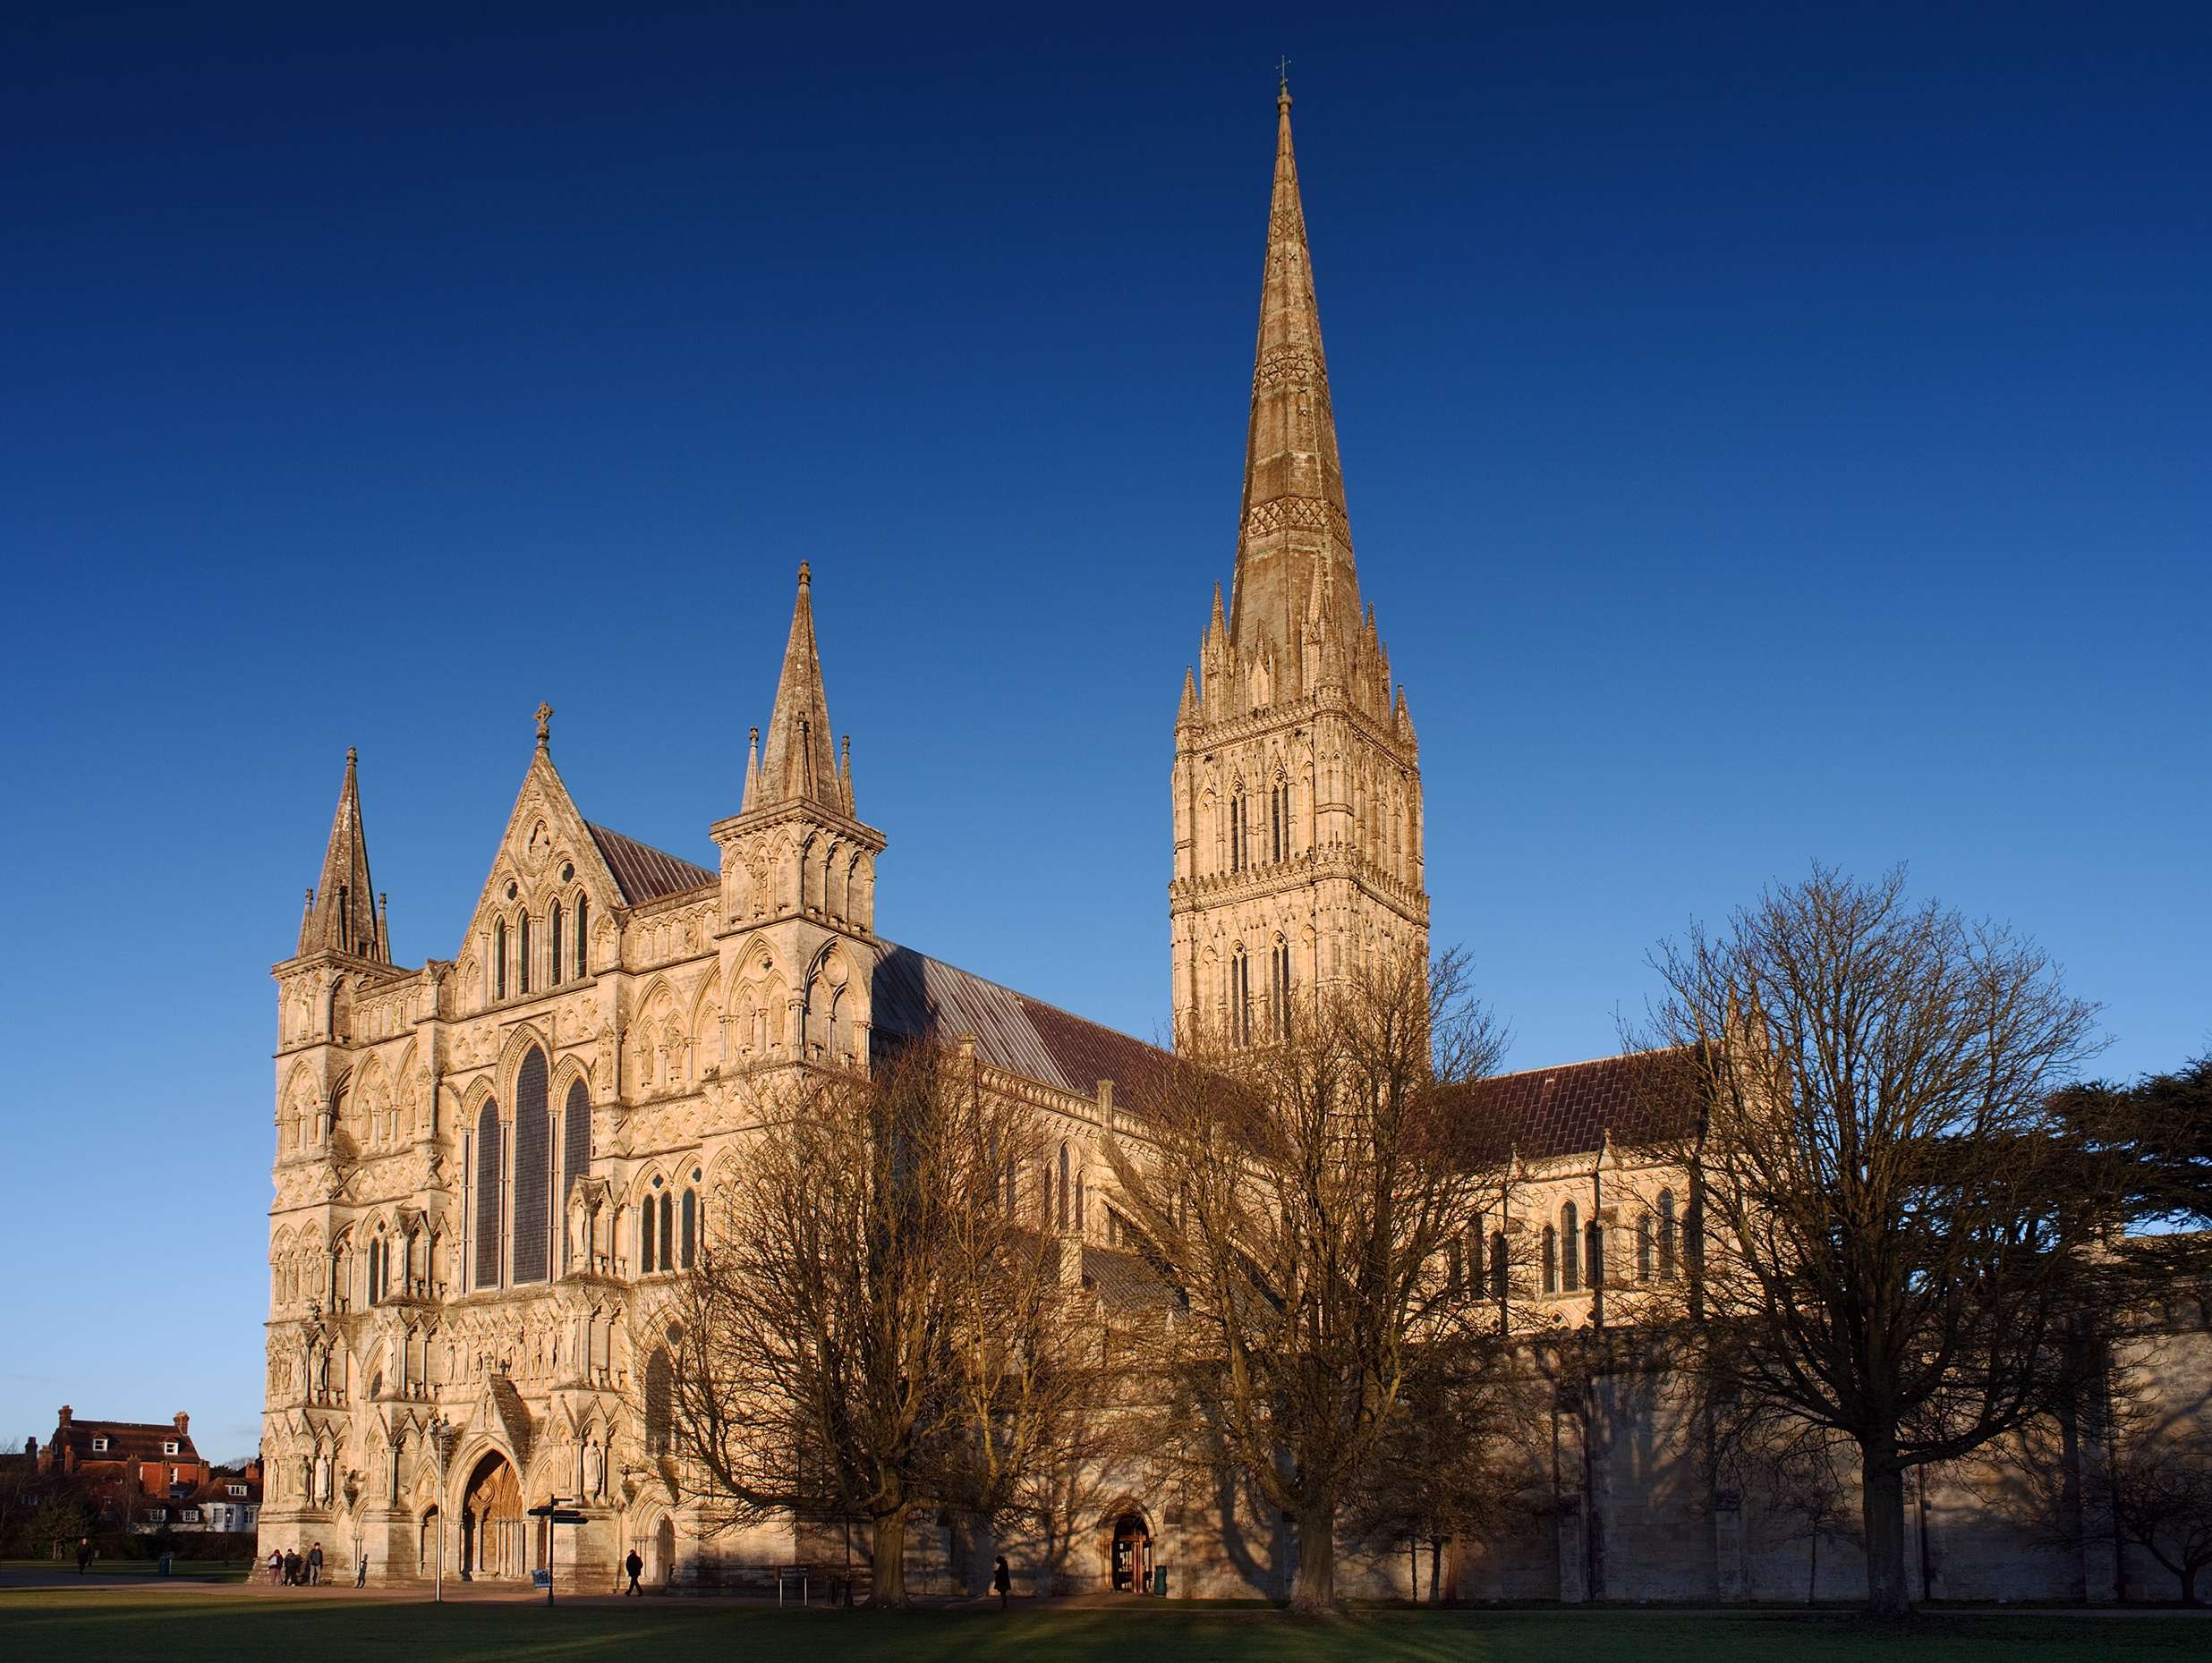 Reasons to wend your way in Wiltshire, England - Salisbury Cathedral